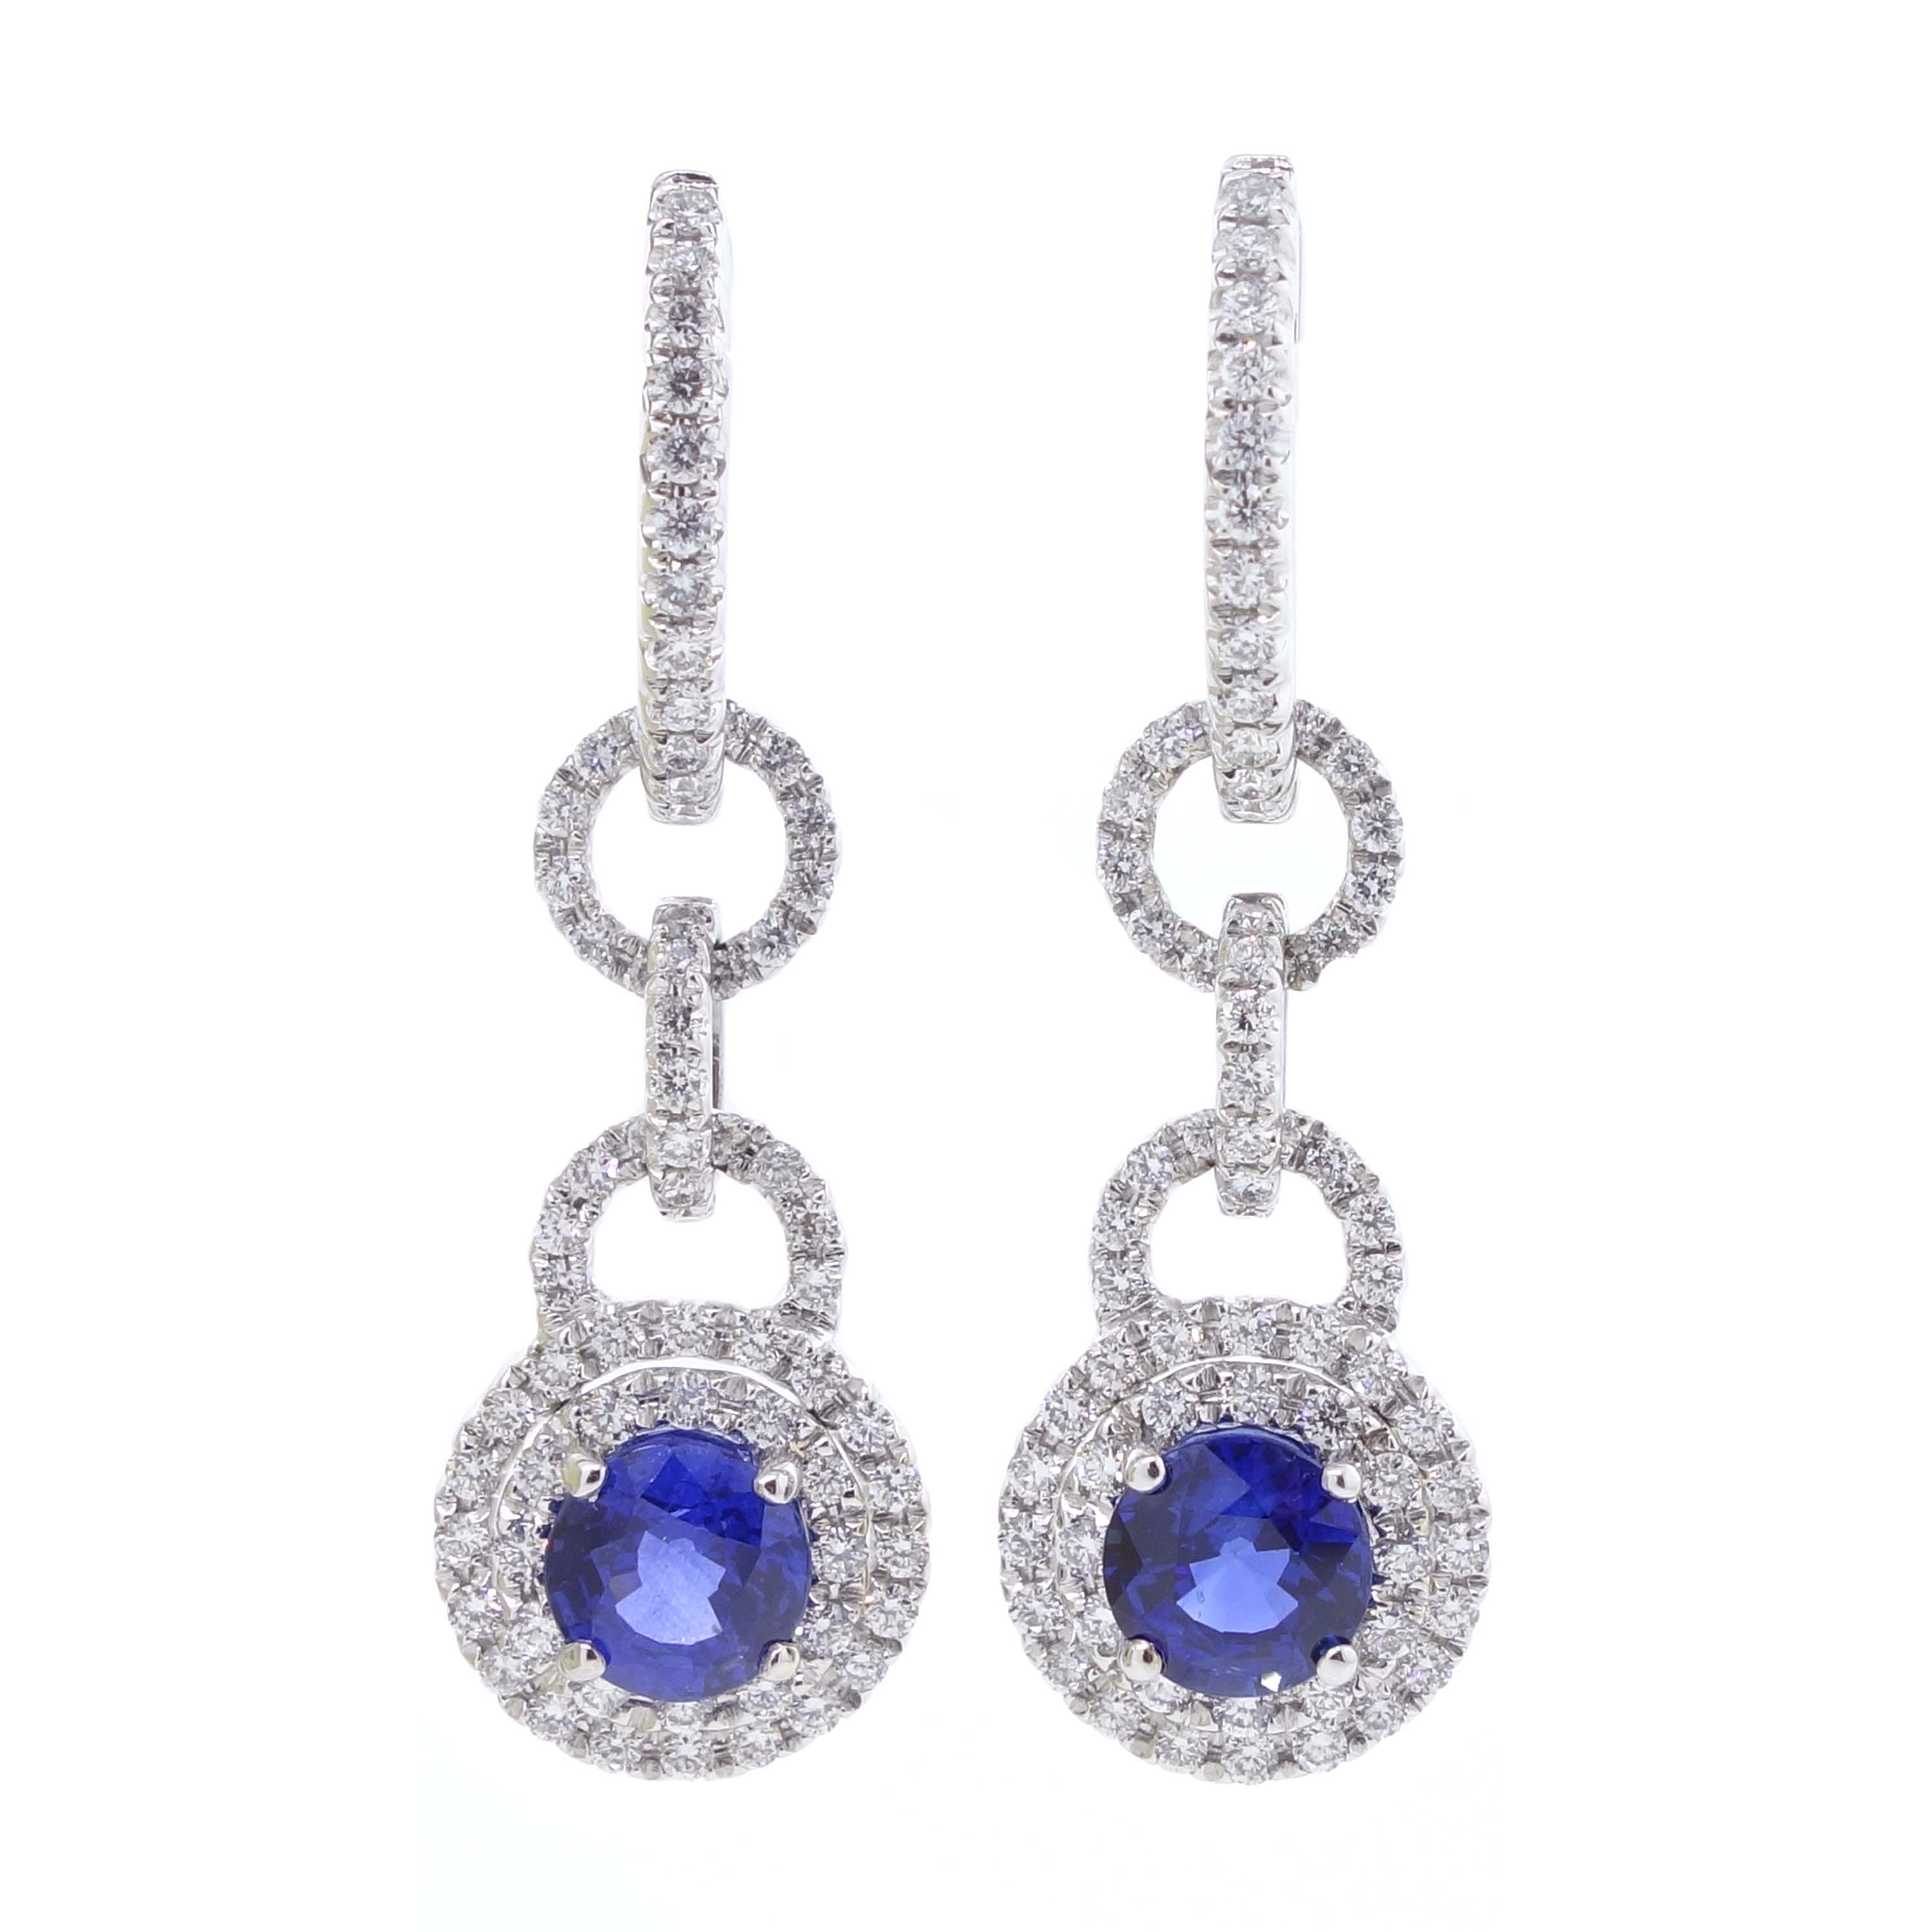 Item Sapphire Earrings Sehgal Diamonds